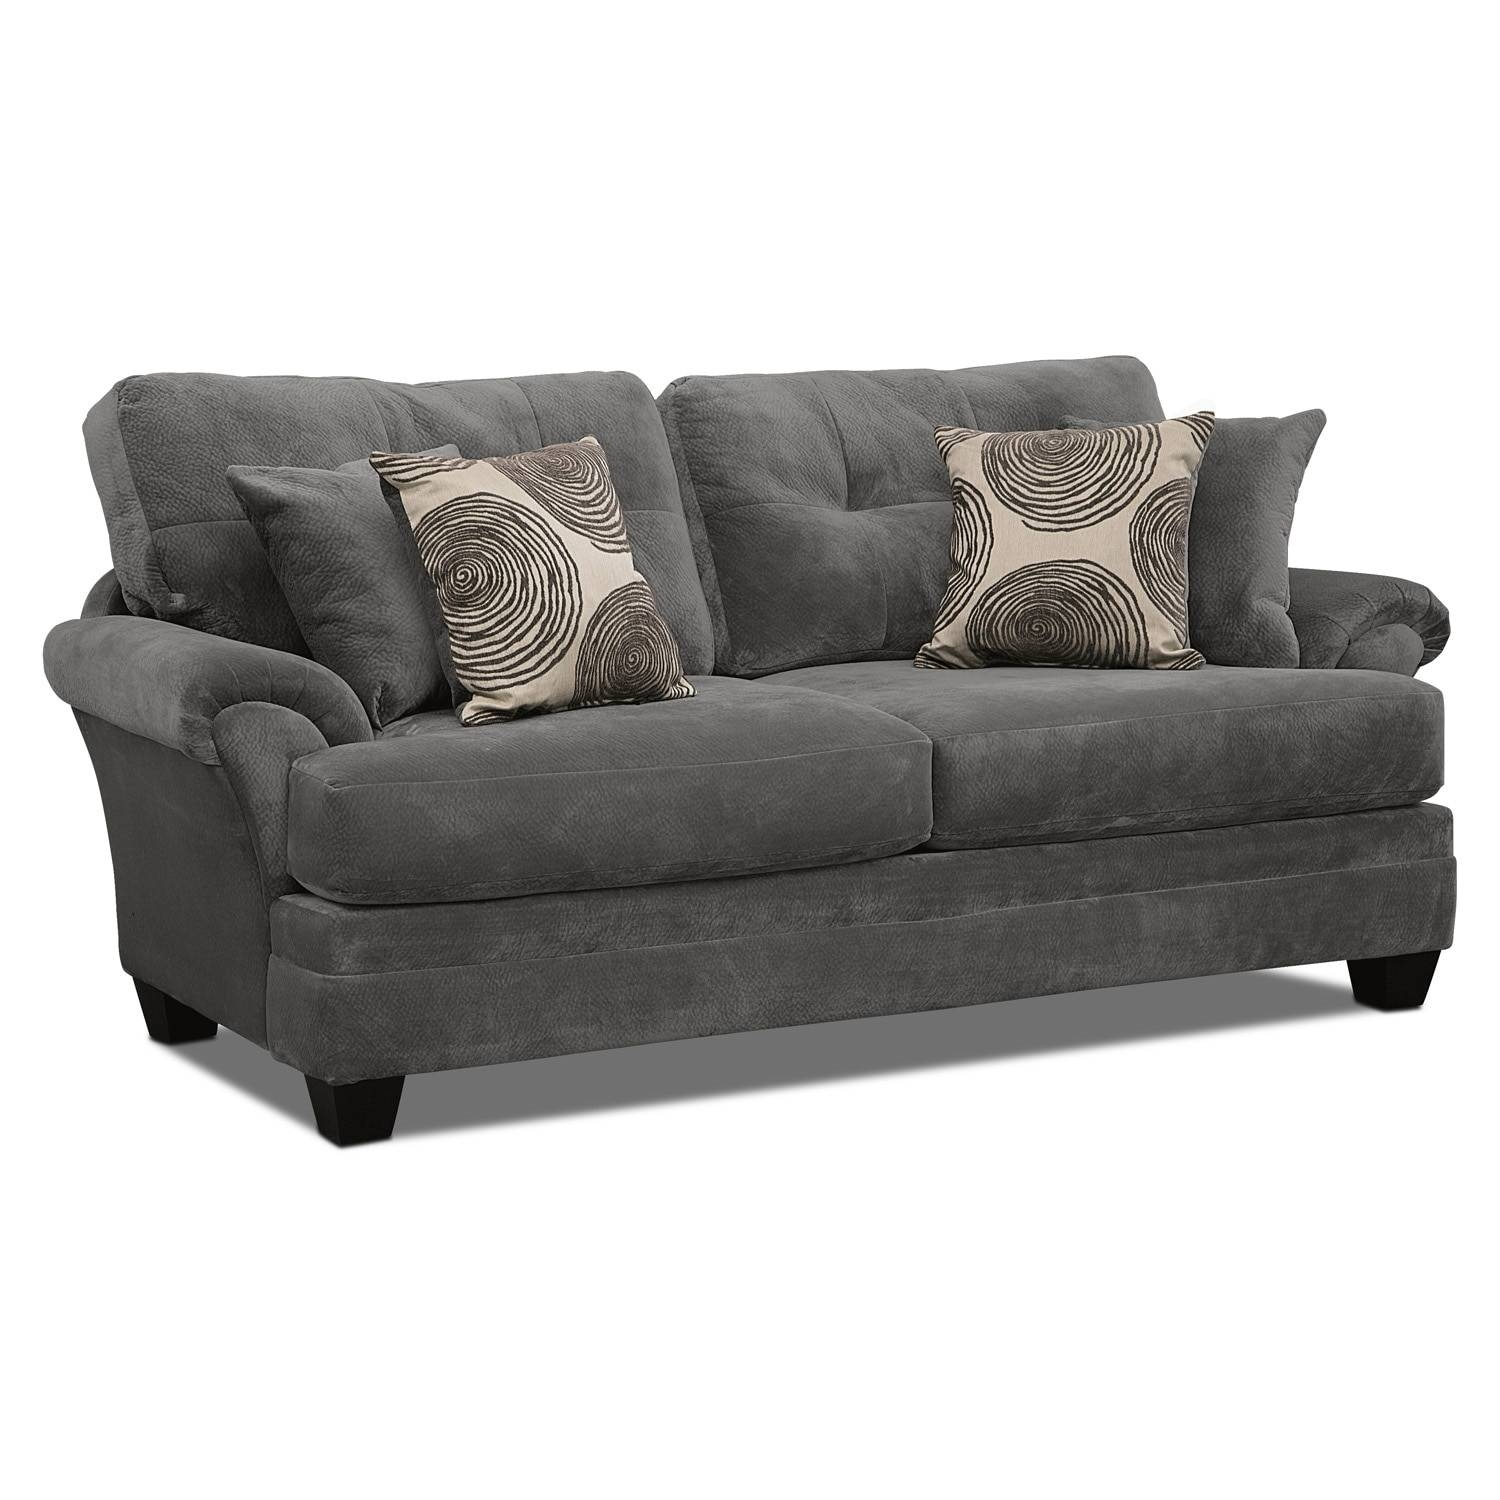 Cuddler Swivel Sofa Chair - Leather Sectional Sofa intended for Cuddler Swivel Sofa Chairs (Image 7 of 30)